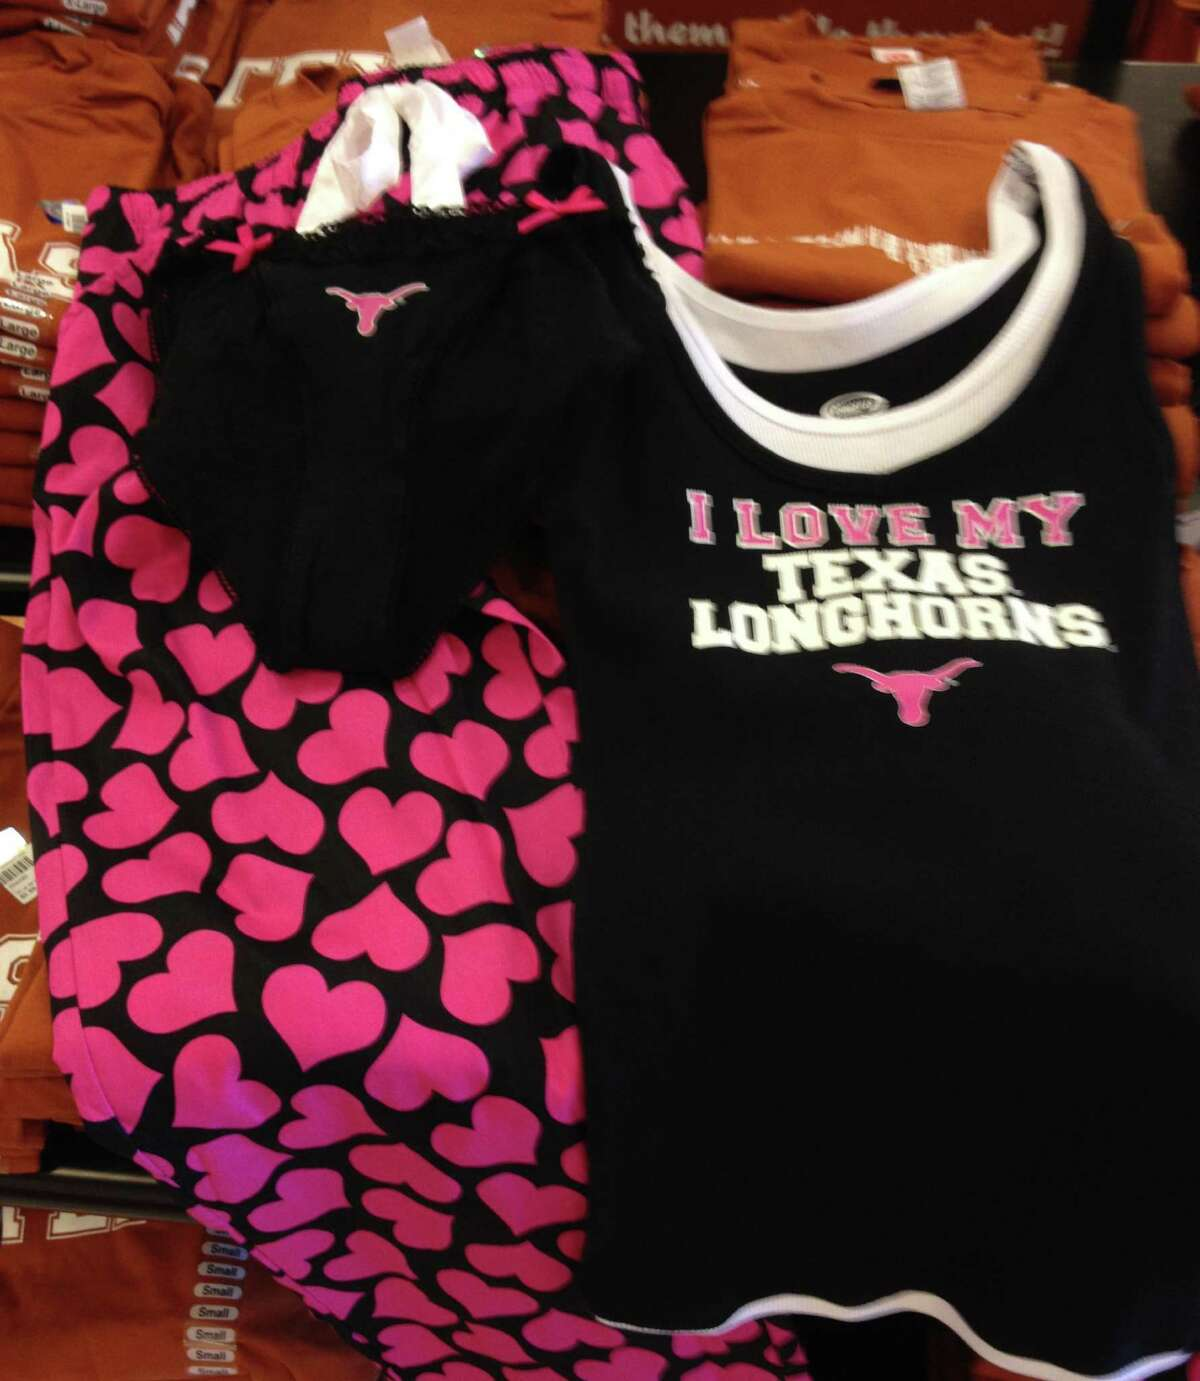 Let staff writer Richard A. Marini guide you in your search for the perfect, yet nearly late, Valentine's Day gift. Celebrate the Longhorns in - yes, we're going there - more ways than one with some sexy UT britches from the University Co-Op in The Quarry.